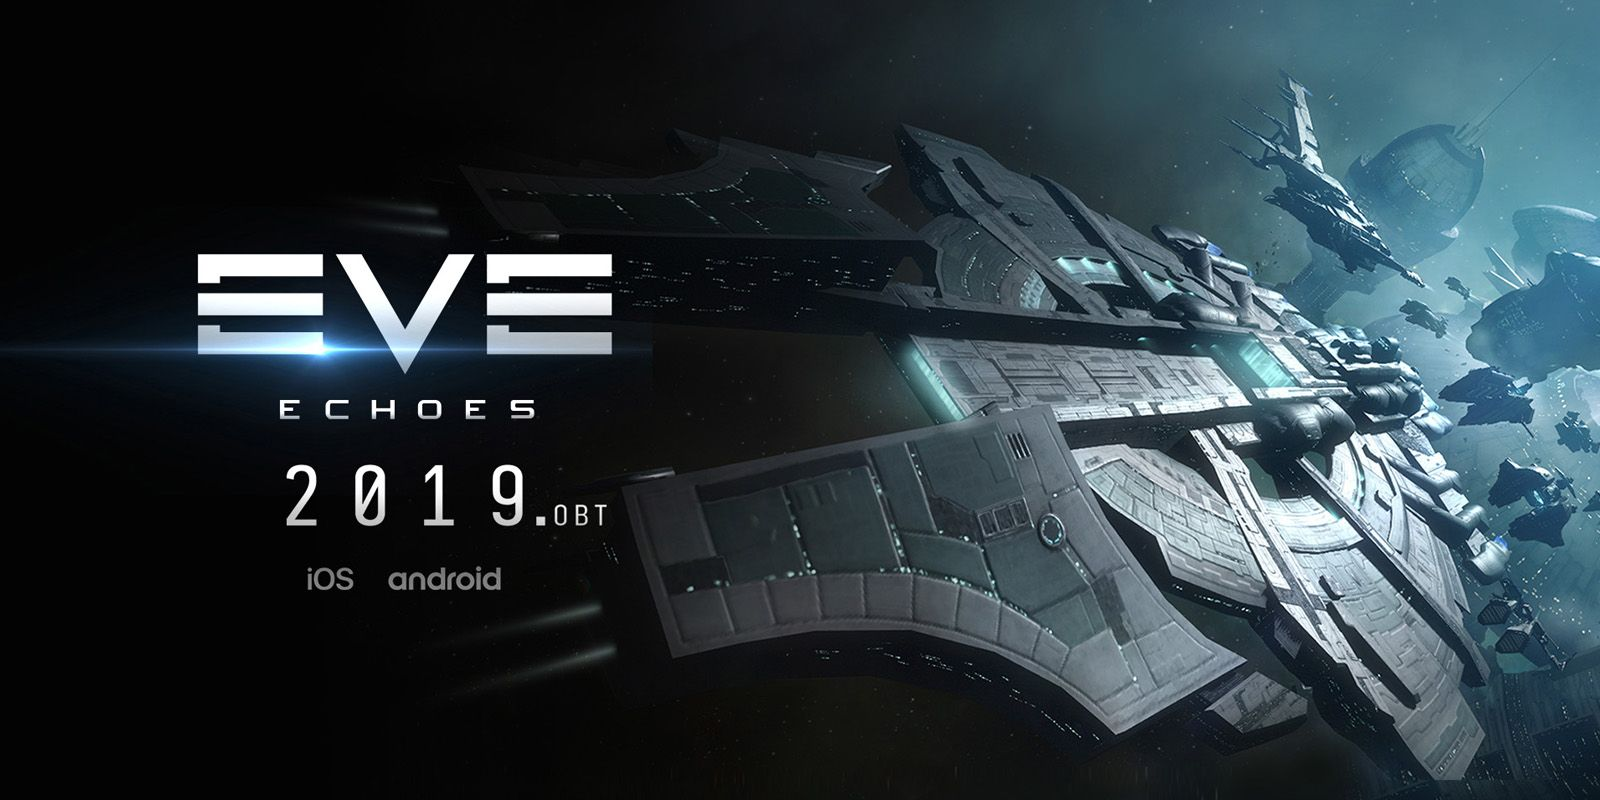 EVE: Echoes Trailer – The New EVE Online Mobile Game Revealed